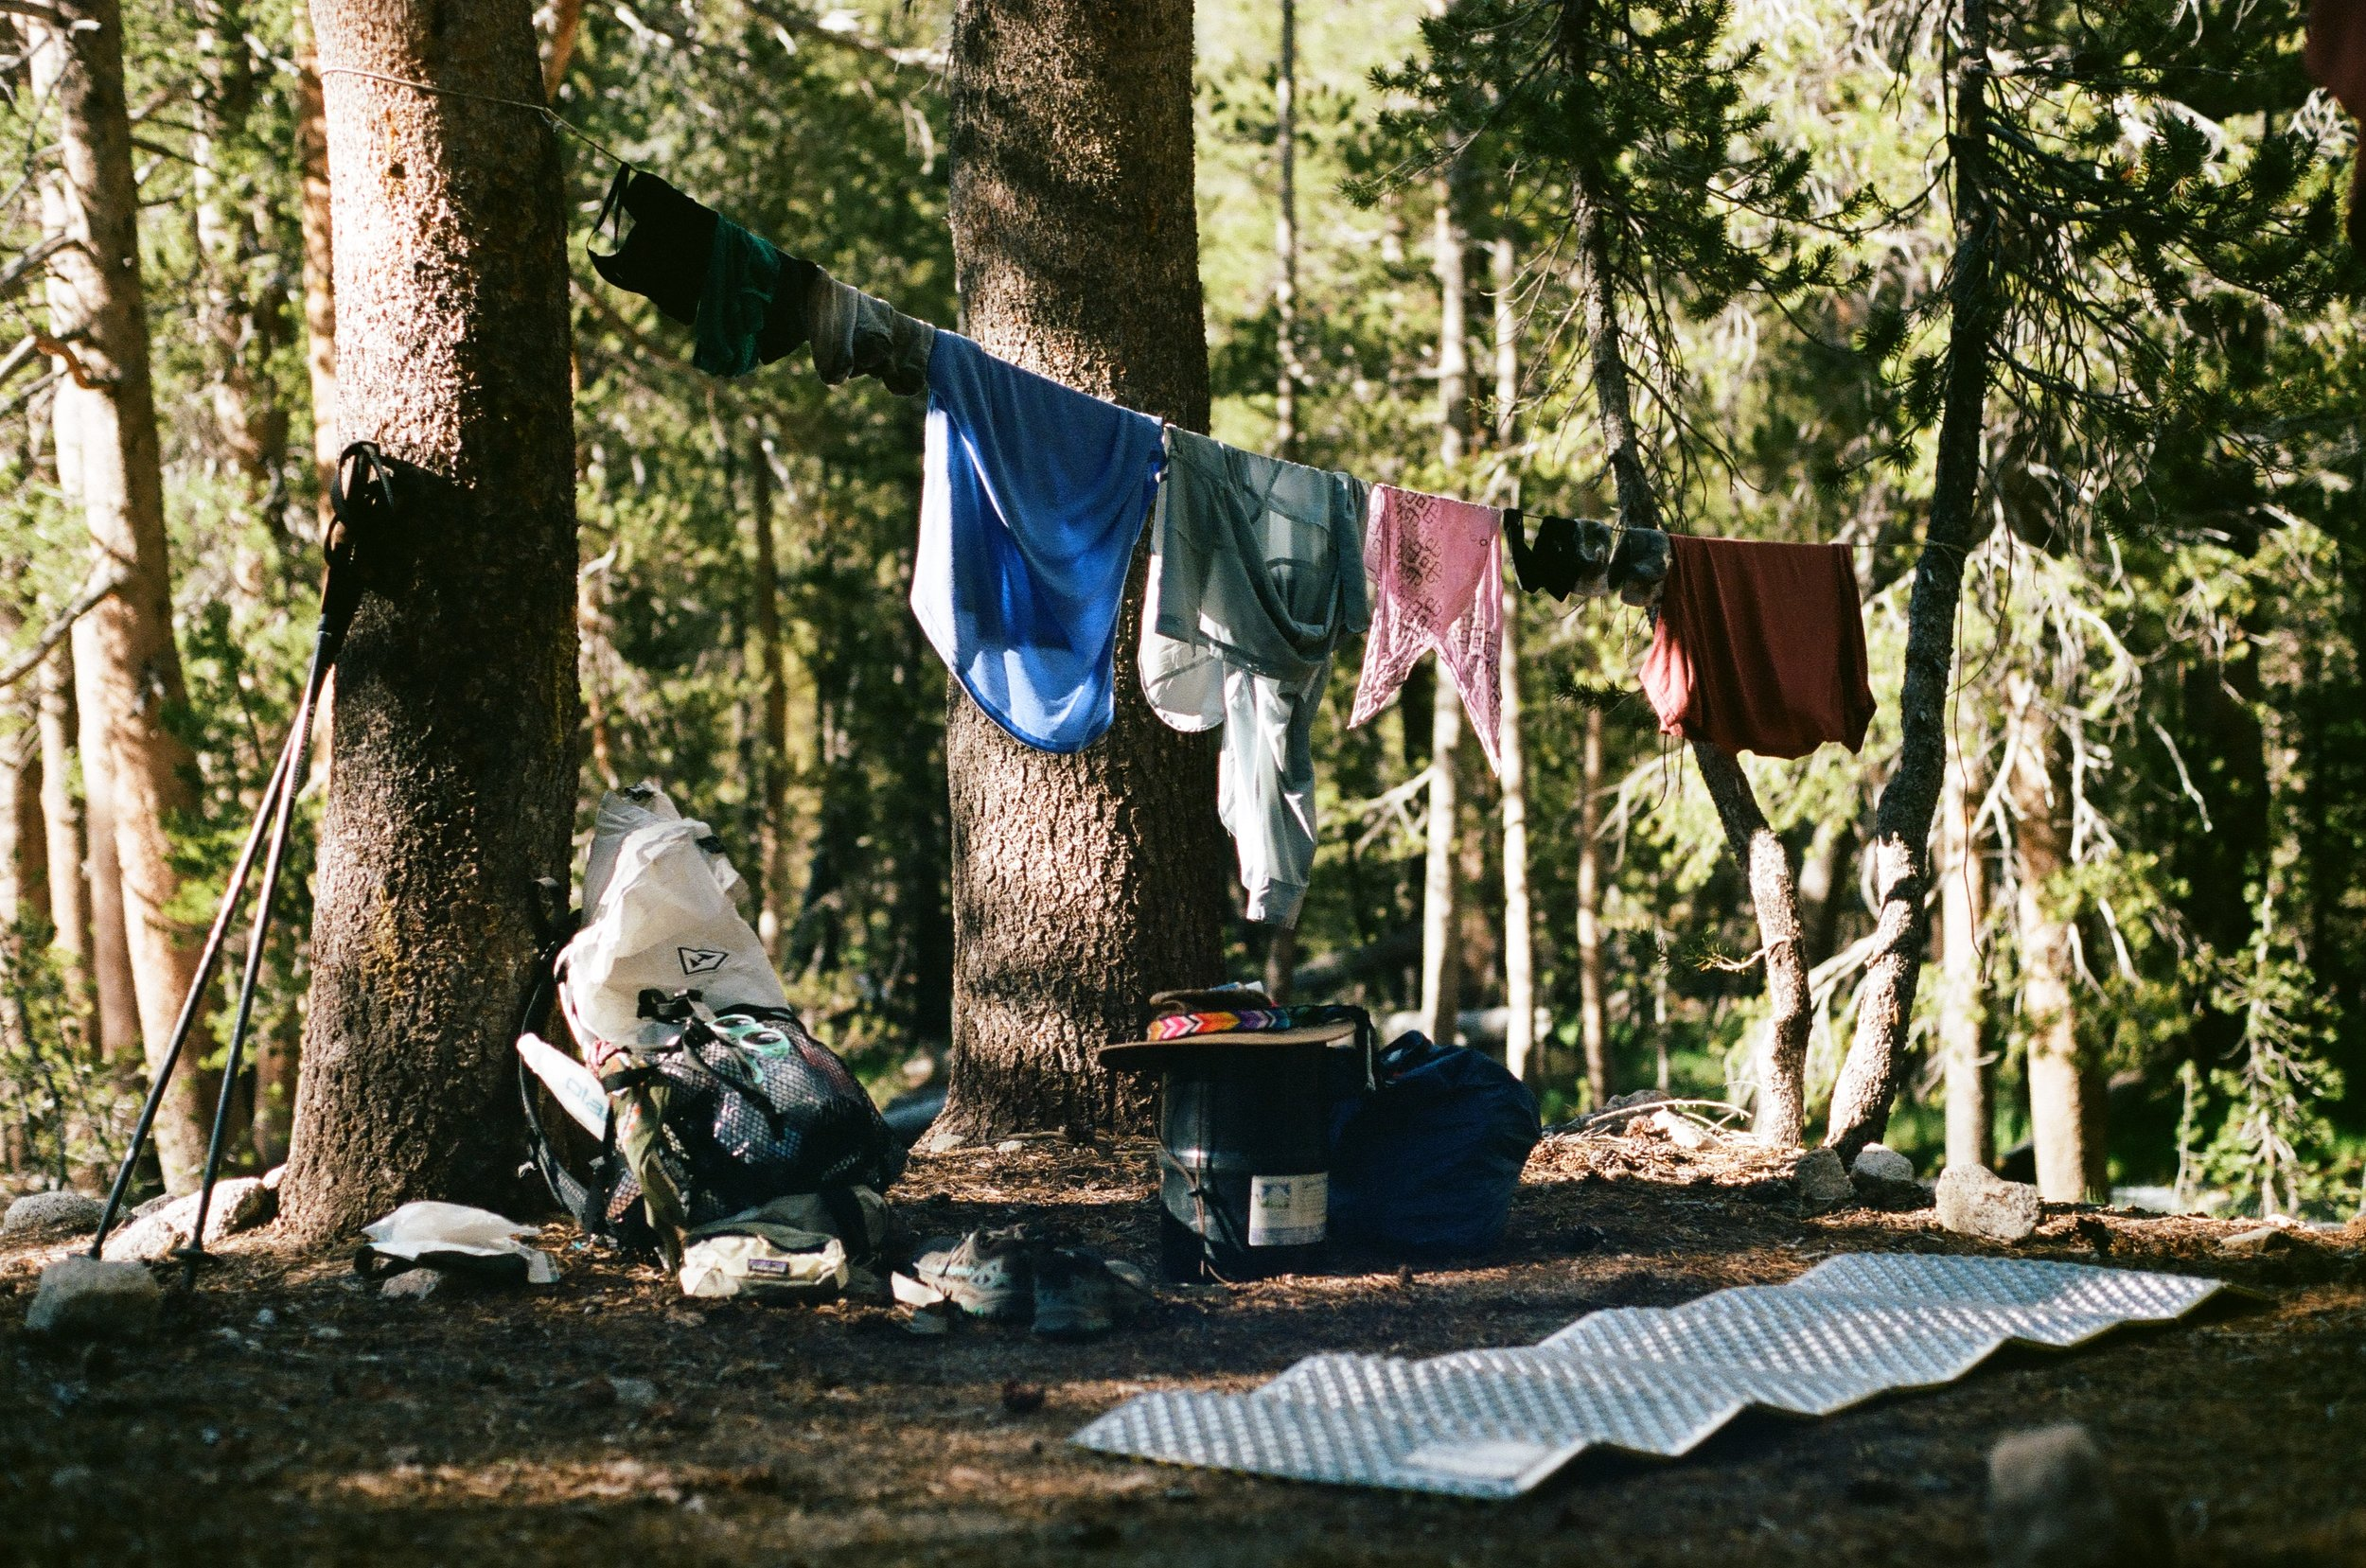 Camp spot at the end of day 2 - 35mm film